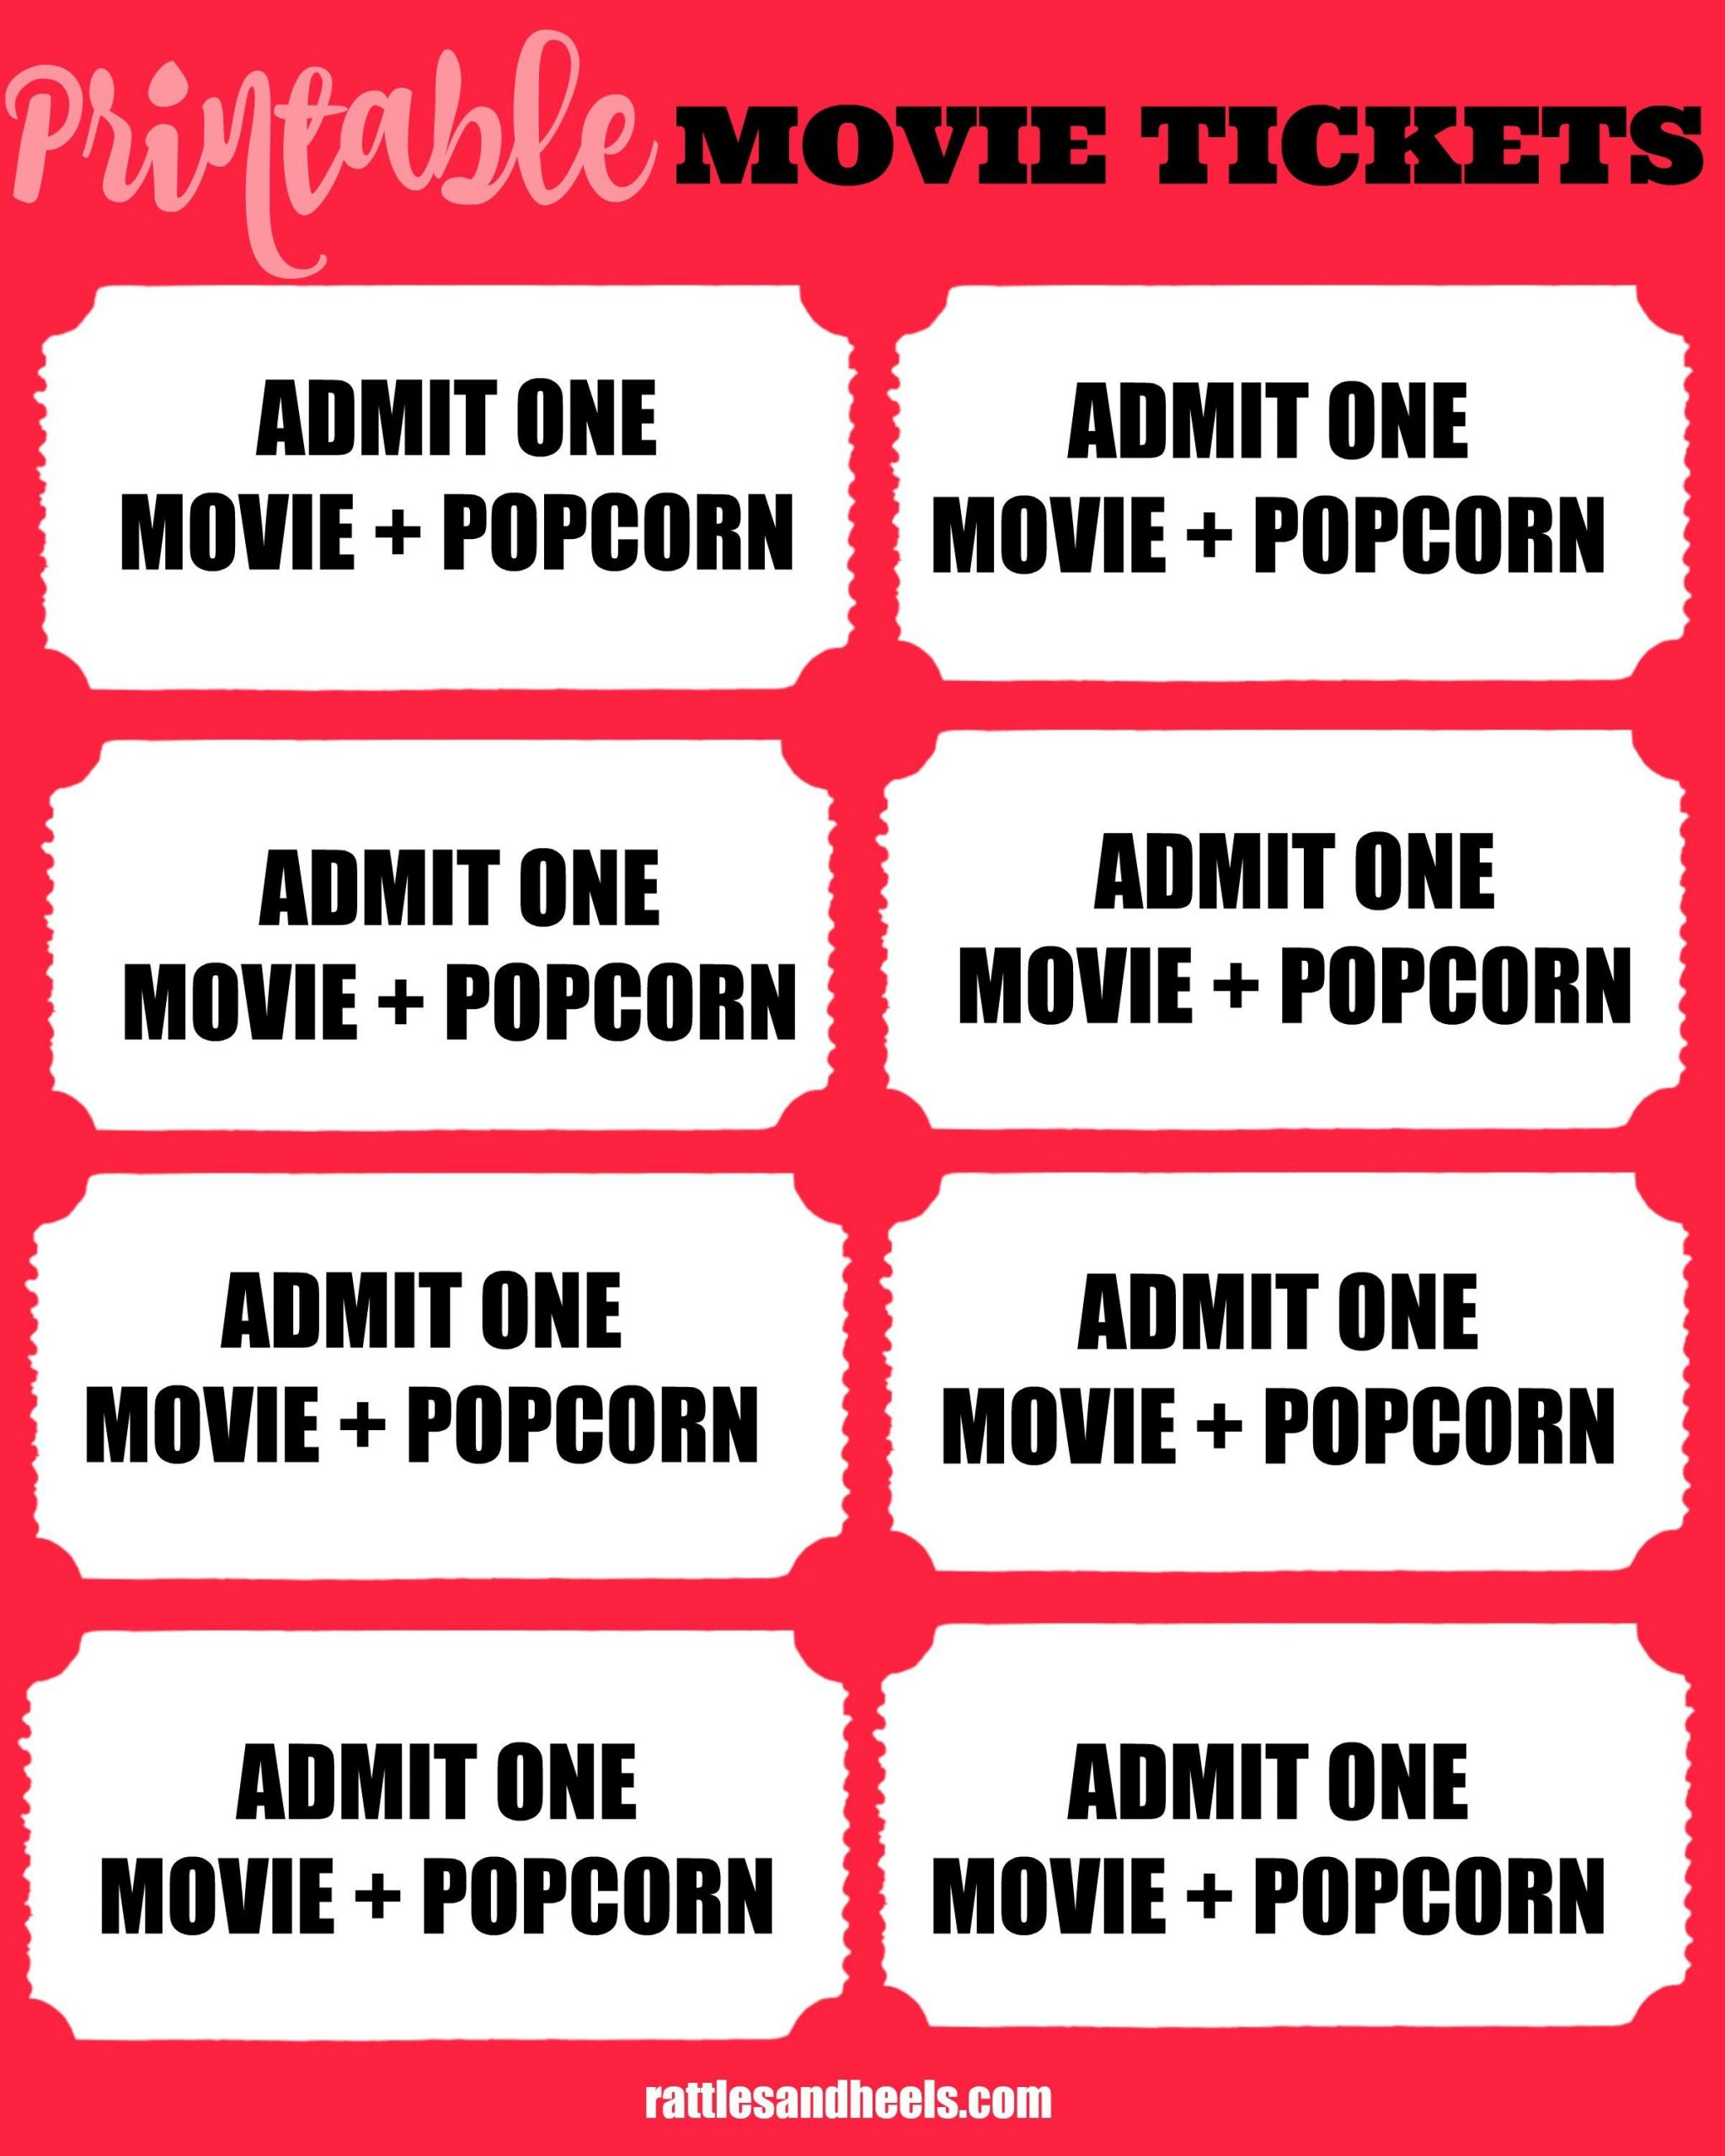 Printable Movie Ticket Template